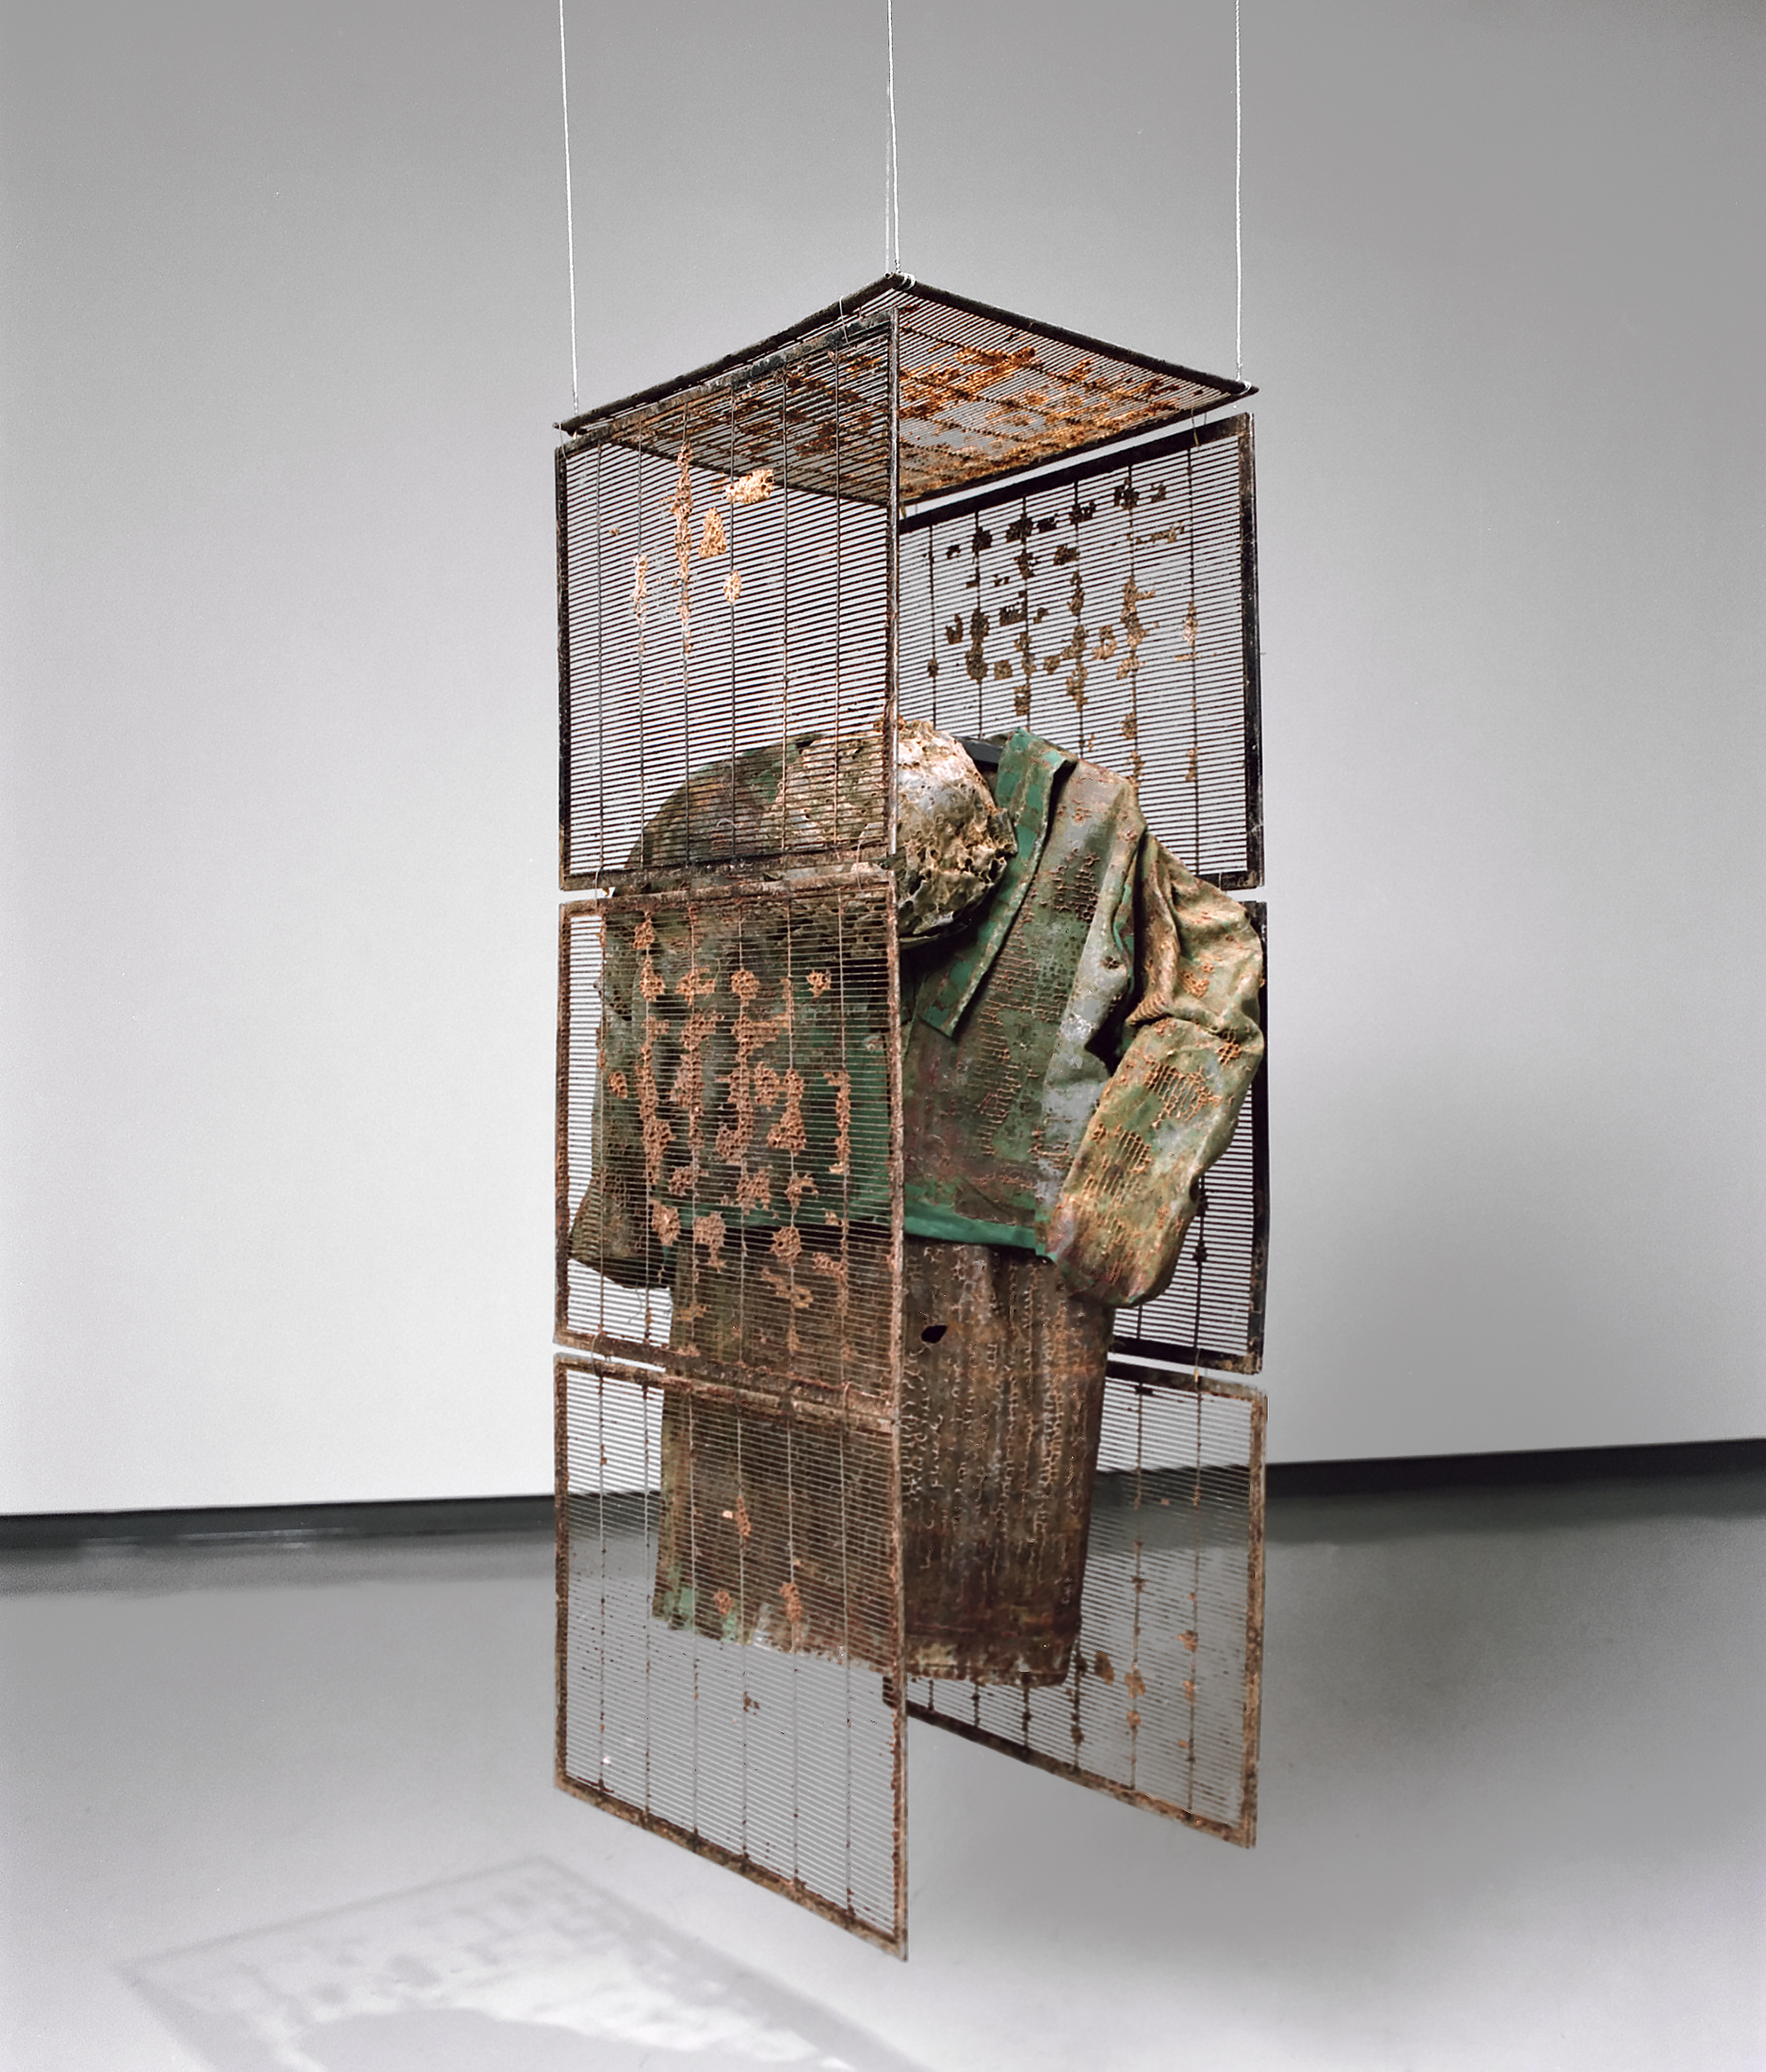 This structure composed of wire-mesh screens is suspended from the ceiling. Inside it hang a jacketed dress and a hat encrusted with beeswax.